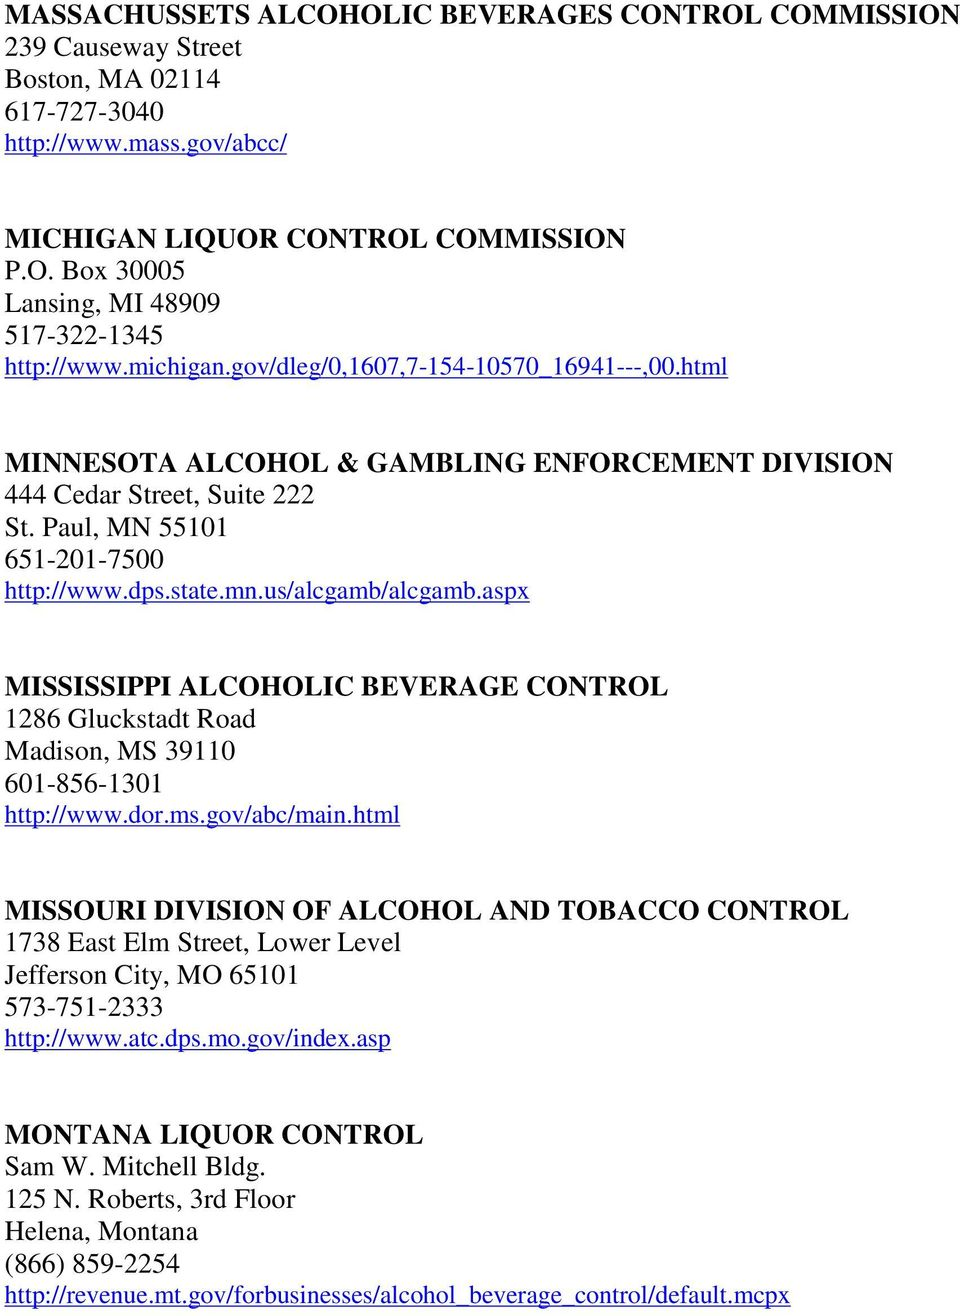 us/alcgamb/alcgamb.aspx MISSISSIPPI ALCOHOLIC BEVERAGE CONTROL 1286 Gluckstadt Road Madison, MS 39110 601-856-1301 http://www.dor.ms.gov/abc/main.